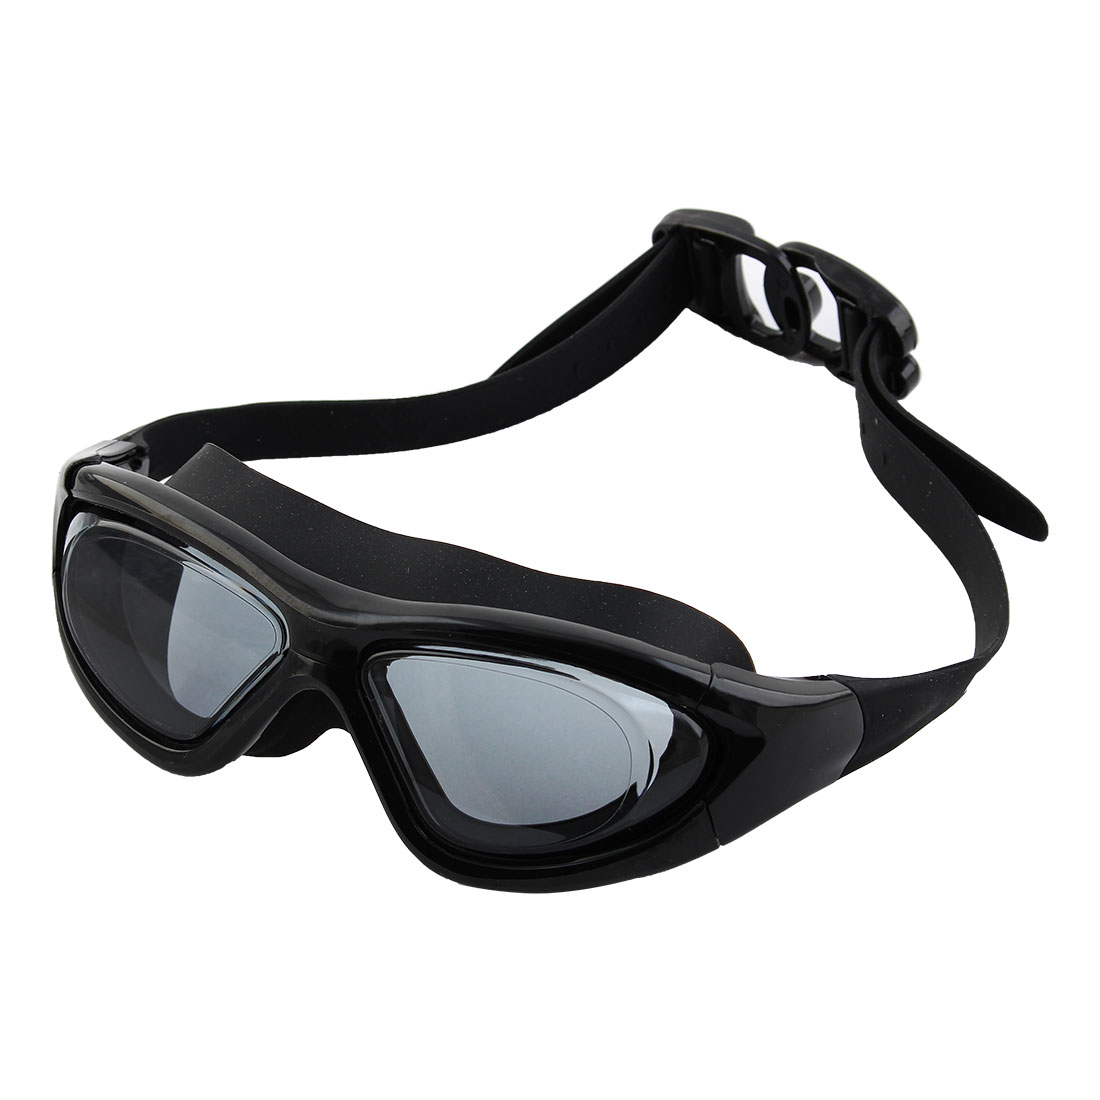 Clear Wide Vision Anti Fog Adjustable Belt Swim Glasses Swimming Goggles Black w Storage Case for Adult Men Women